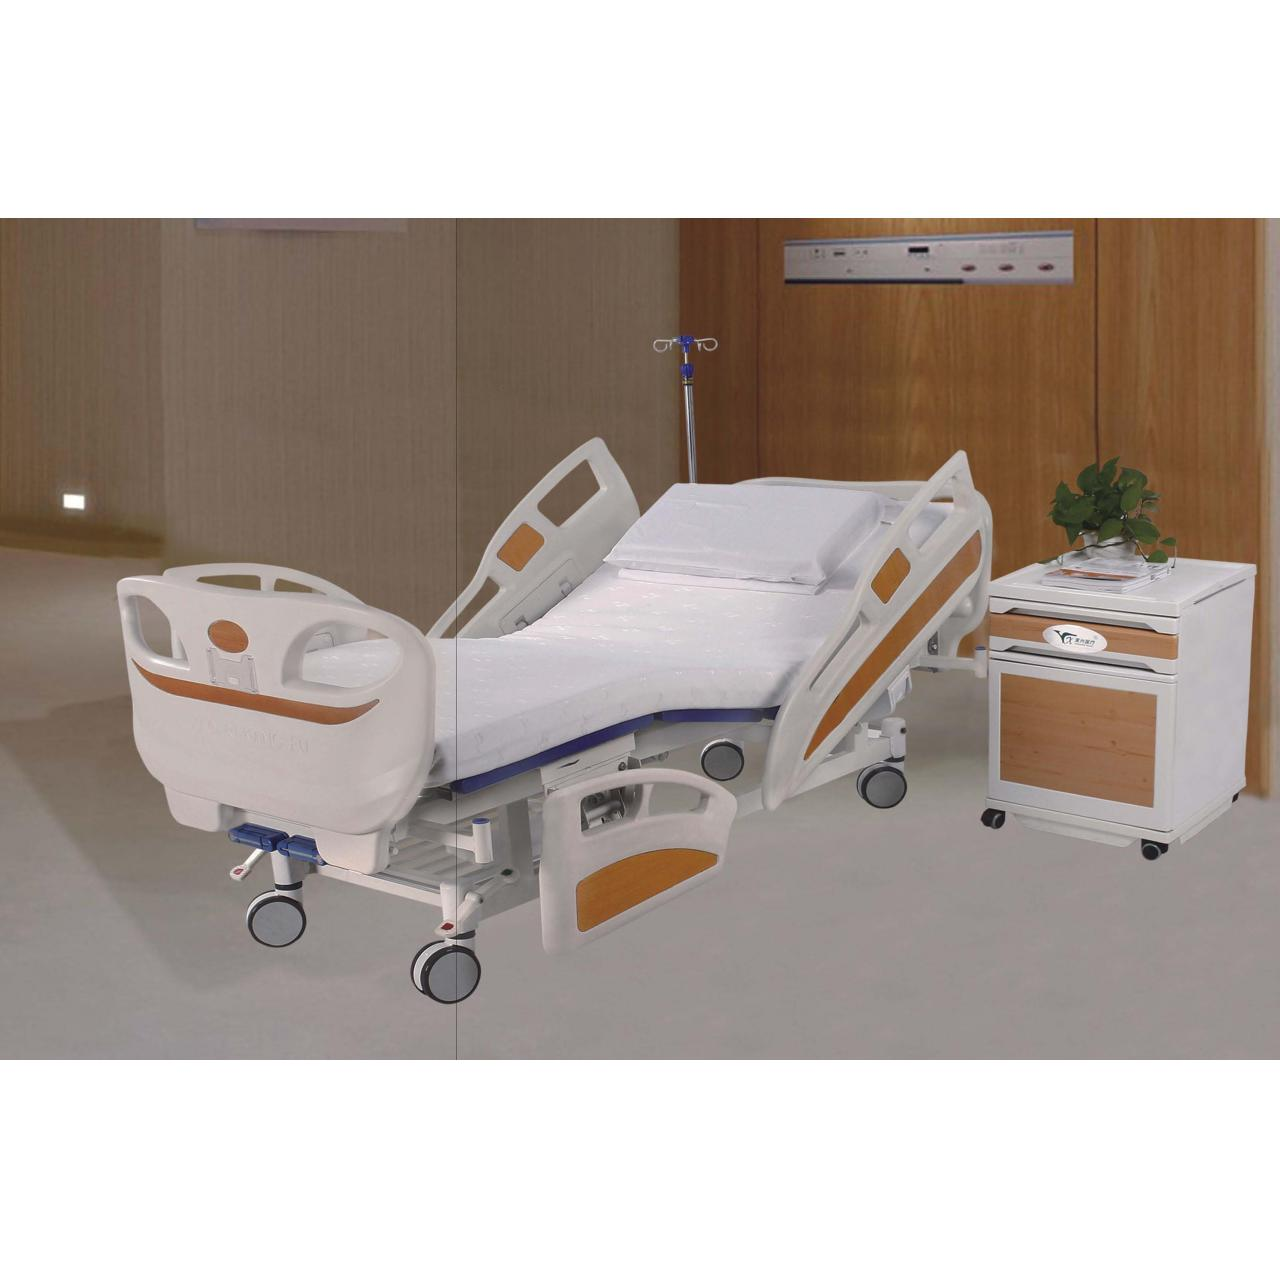 Medical Beds Two function manual beds B04-002